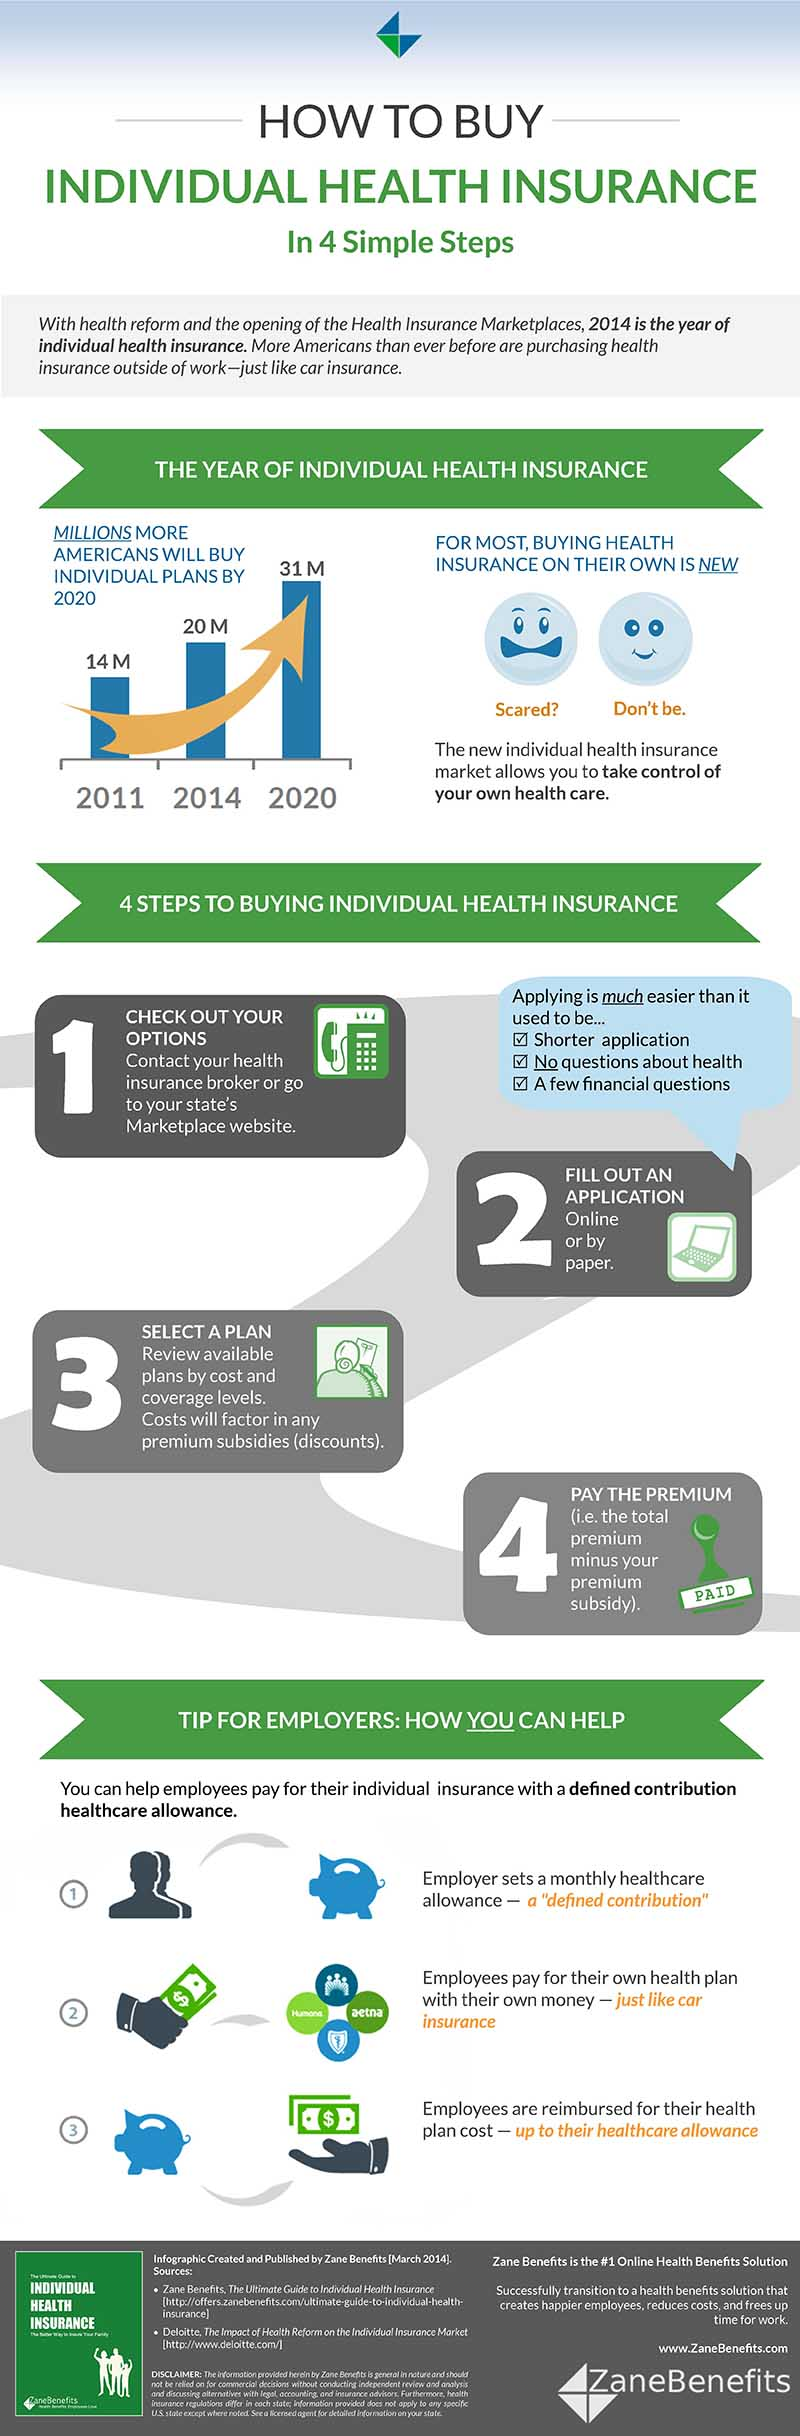 Infographic How to Buy Individual Health Insurance via Zane Benefits